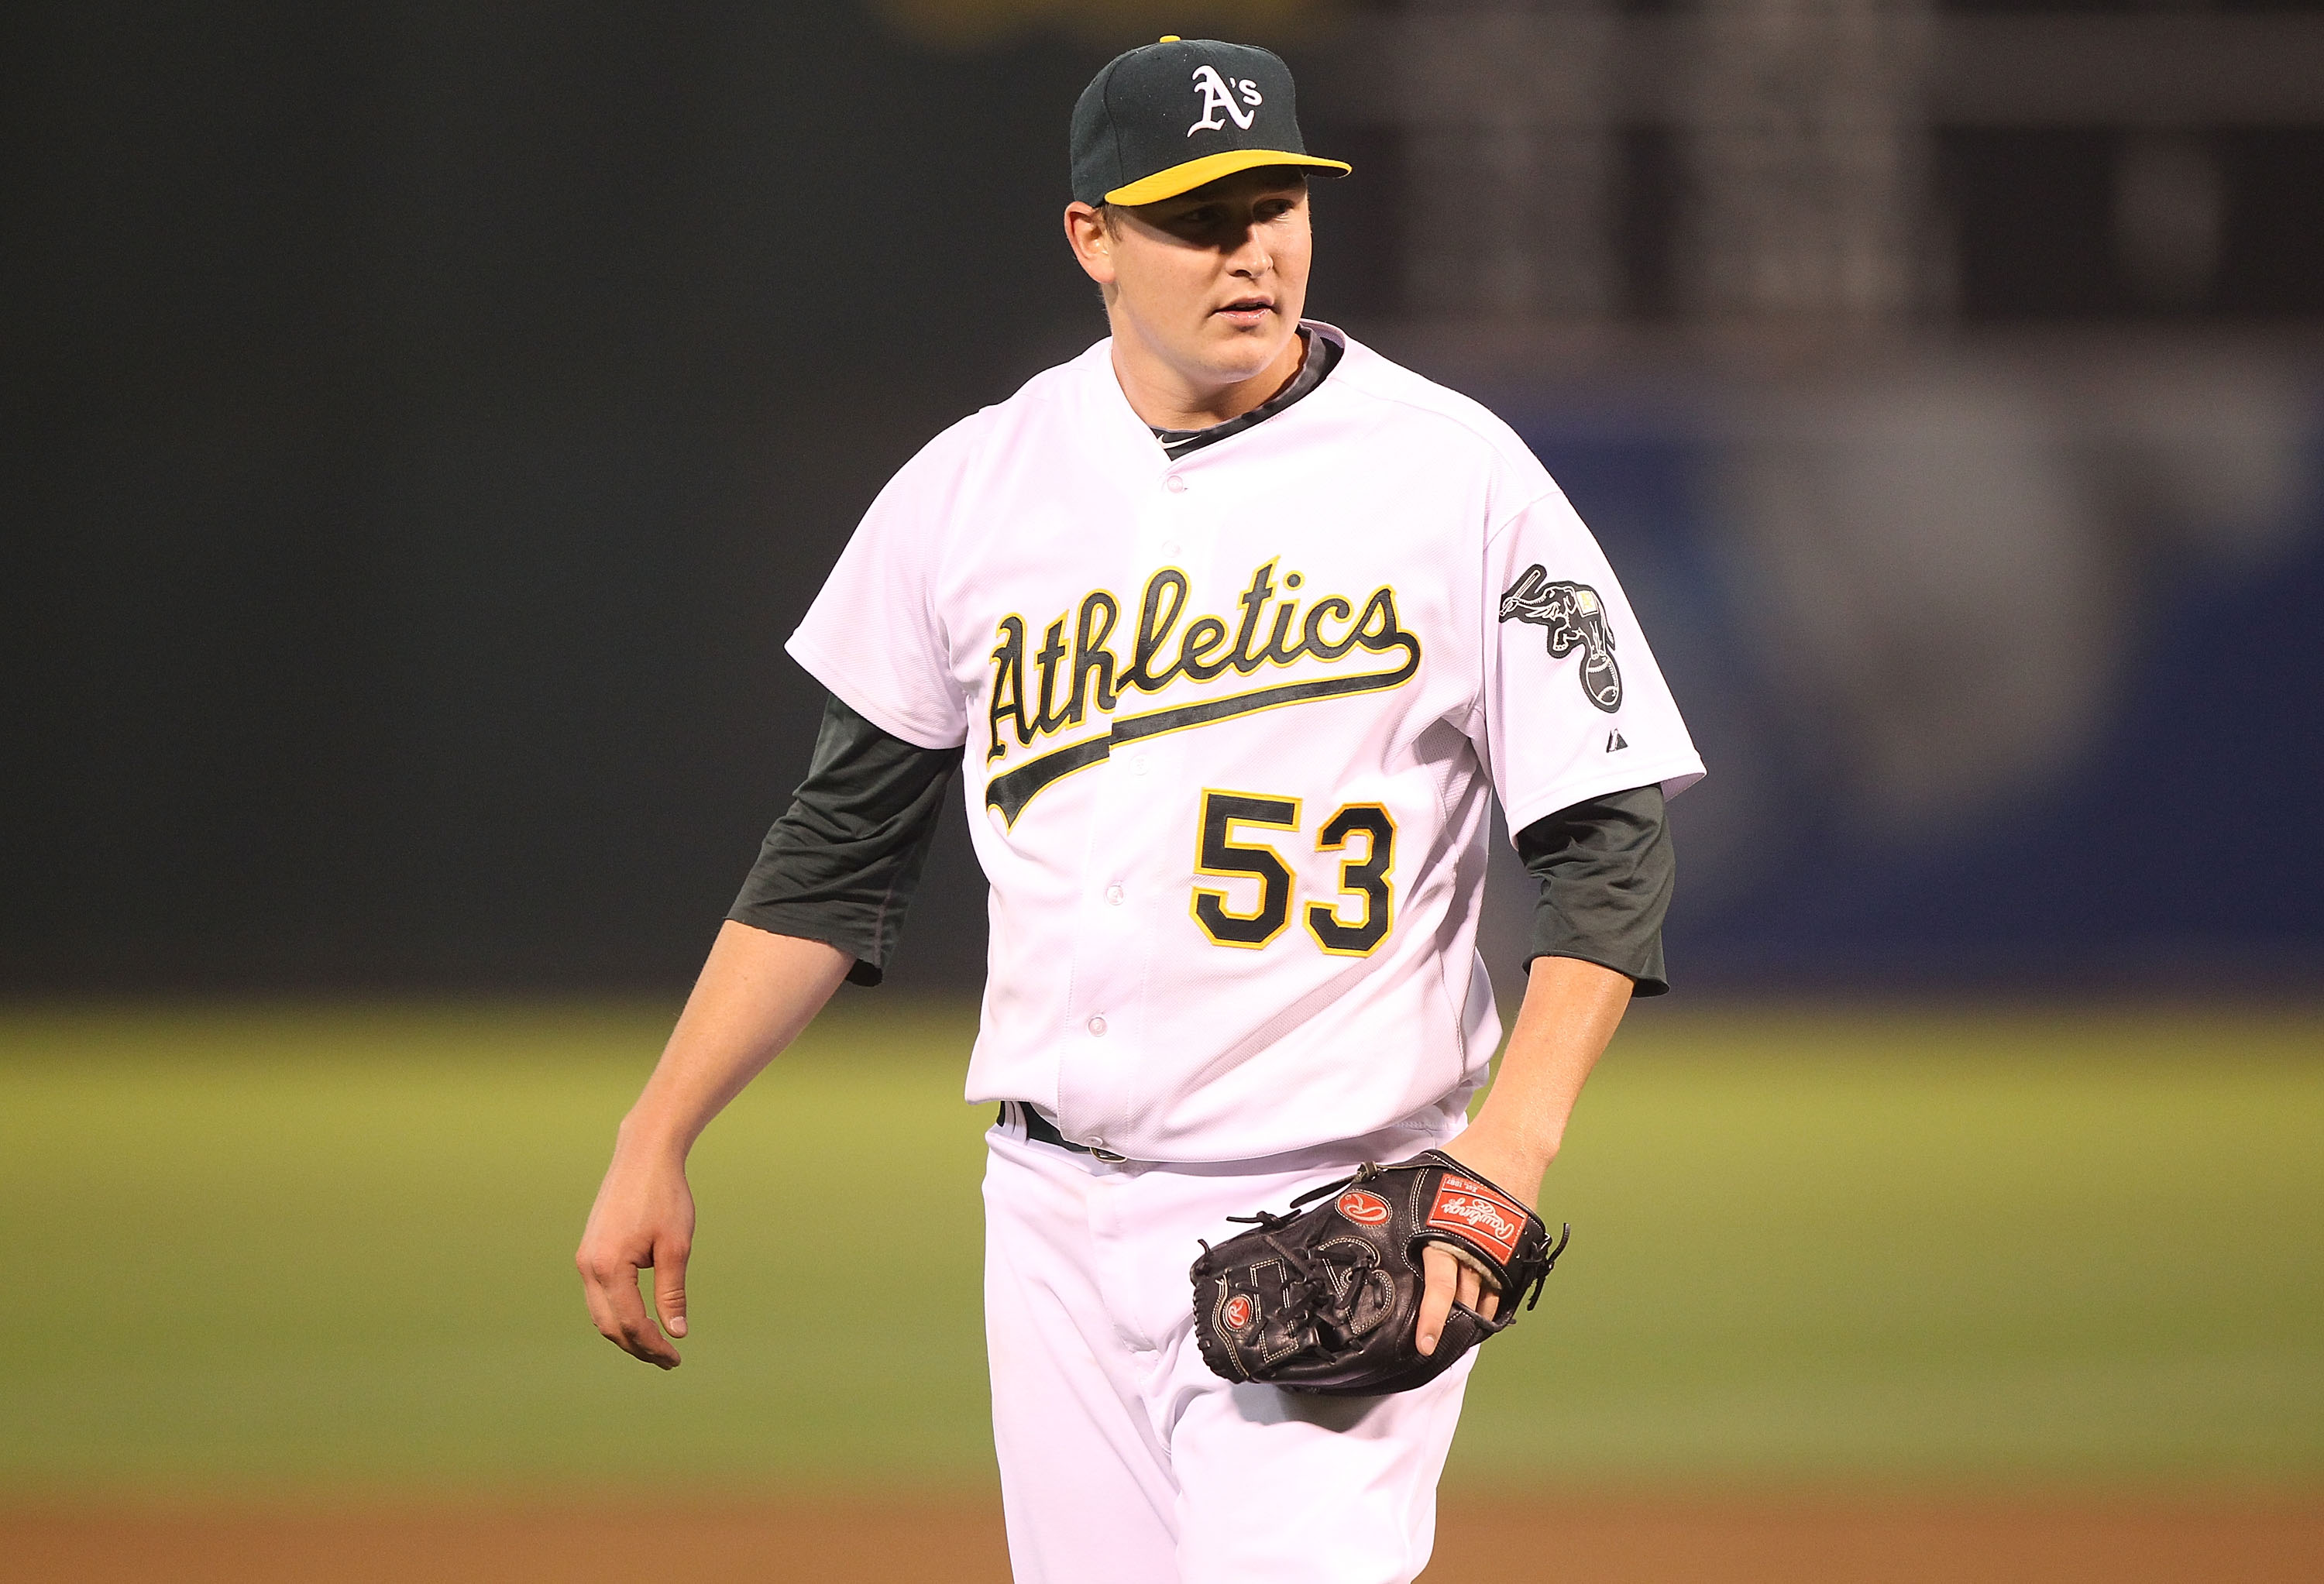 OAKLAND, CA - AUGUST 19:  Trevor Cahill #53 of the Oakland Athletics looks on after striking out Evan Longoria of the Tampa Bay Rays in the eighth inning during an MLB game at the Oakland-Alameda County Coliseum on August 19, 2010 in Oakland, California.